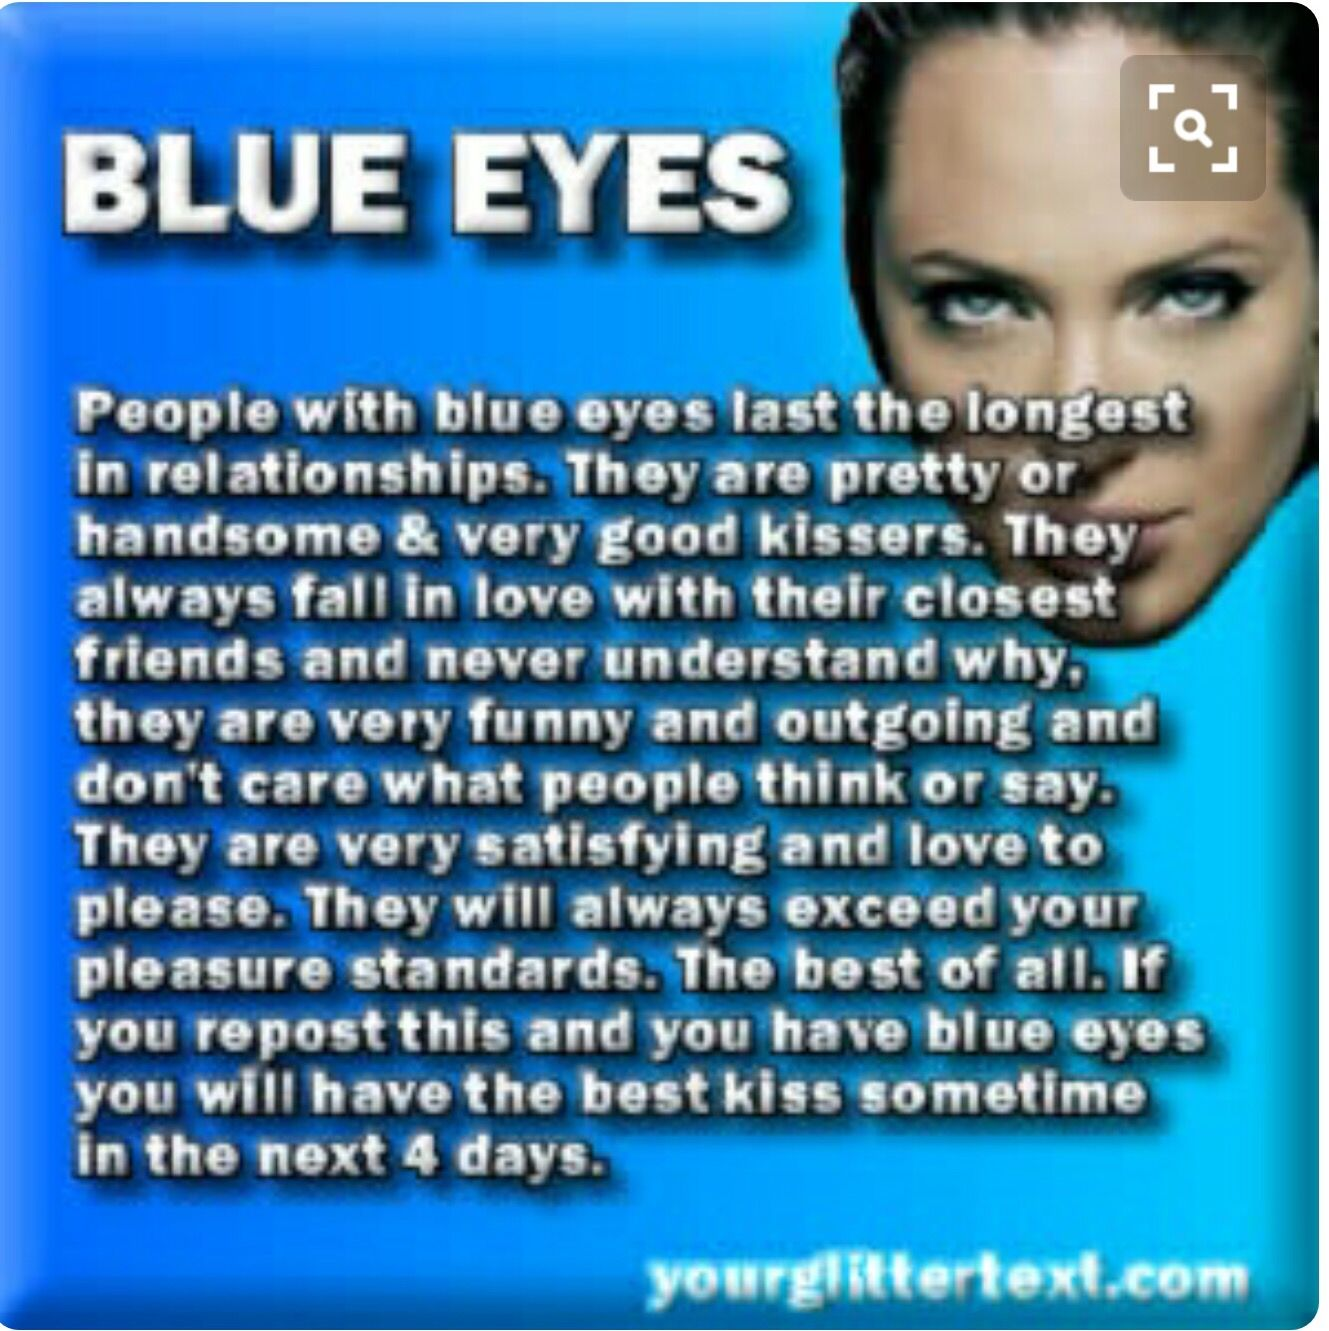 Blue Eyes are the best! So beautiful!👱🏻 ♀ ✌🏻☺ | Favorites